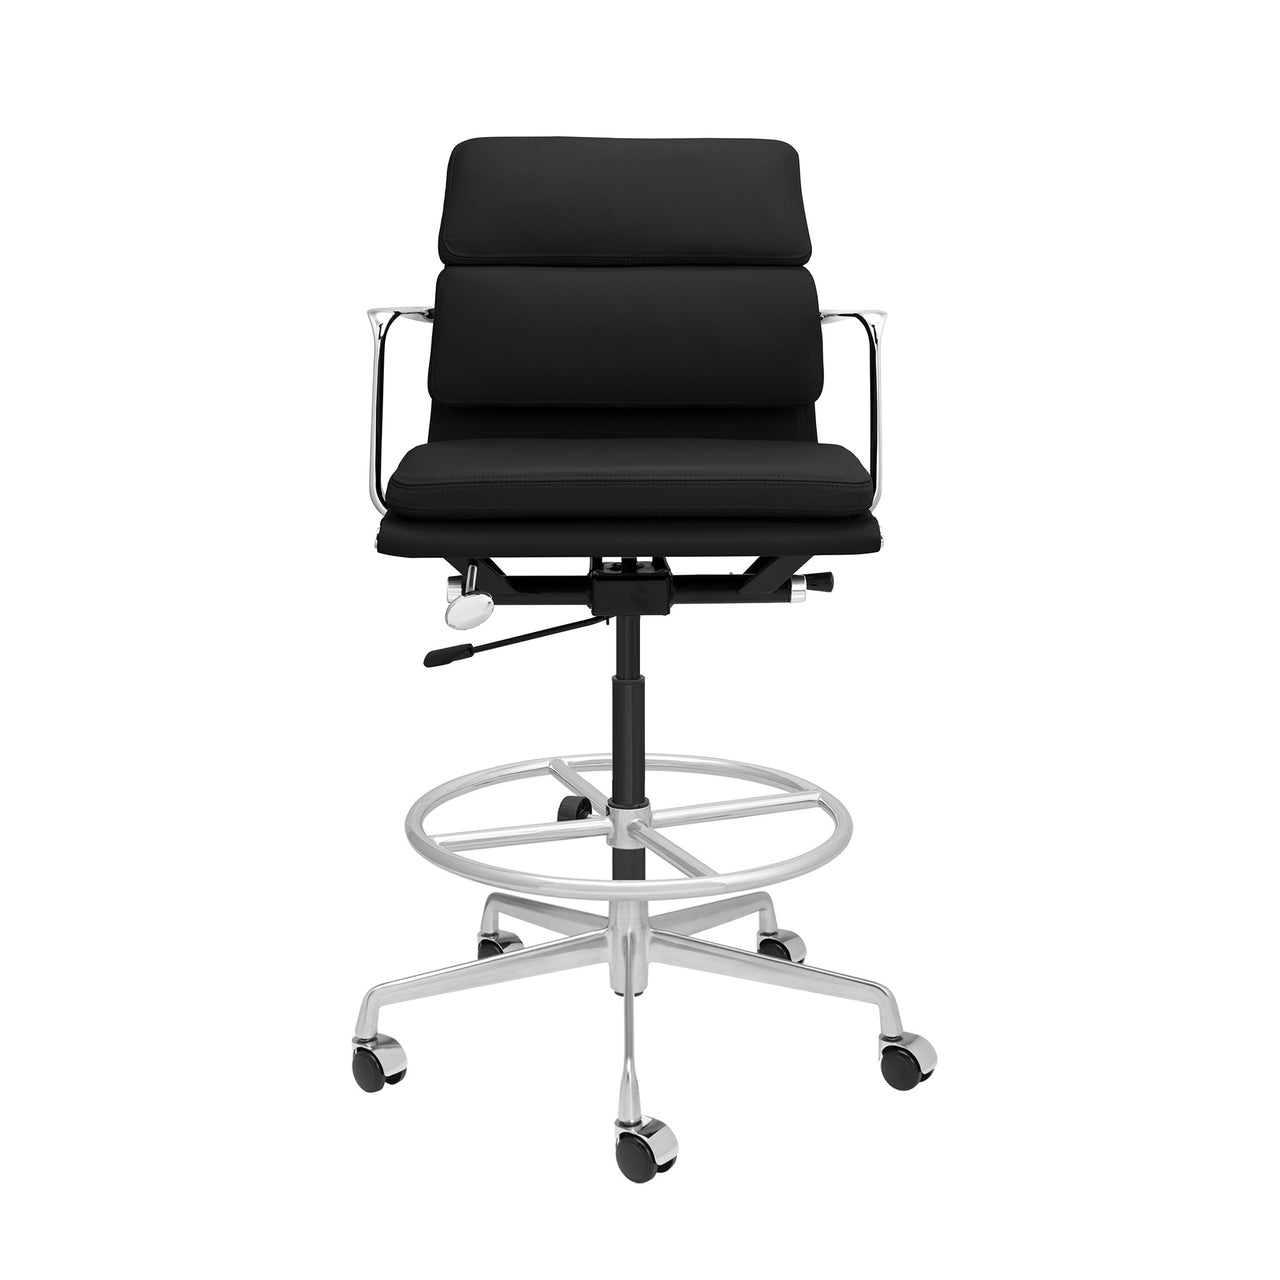 SHIPS MARCH 19TH - SOHO Pro Soft Pad Drafting Chair (Black Italian Leather)